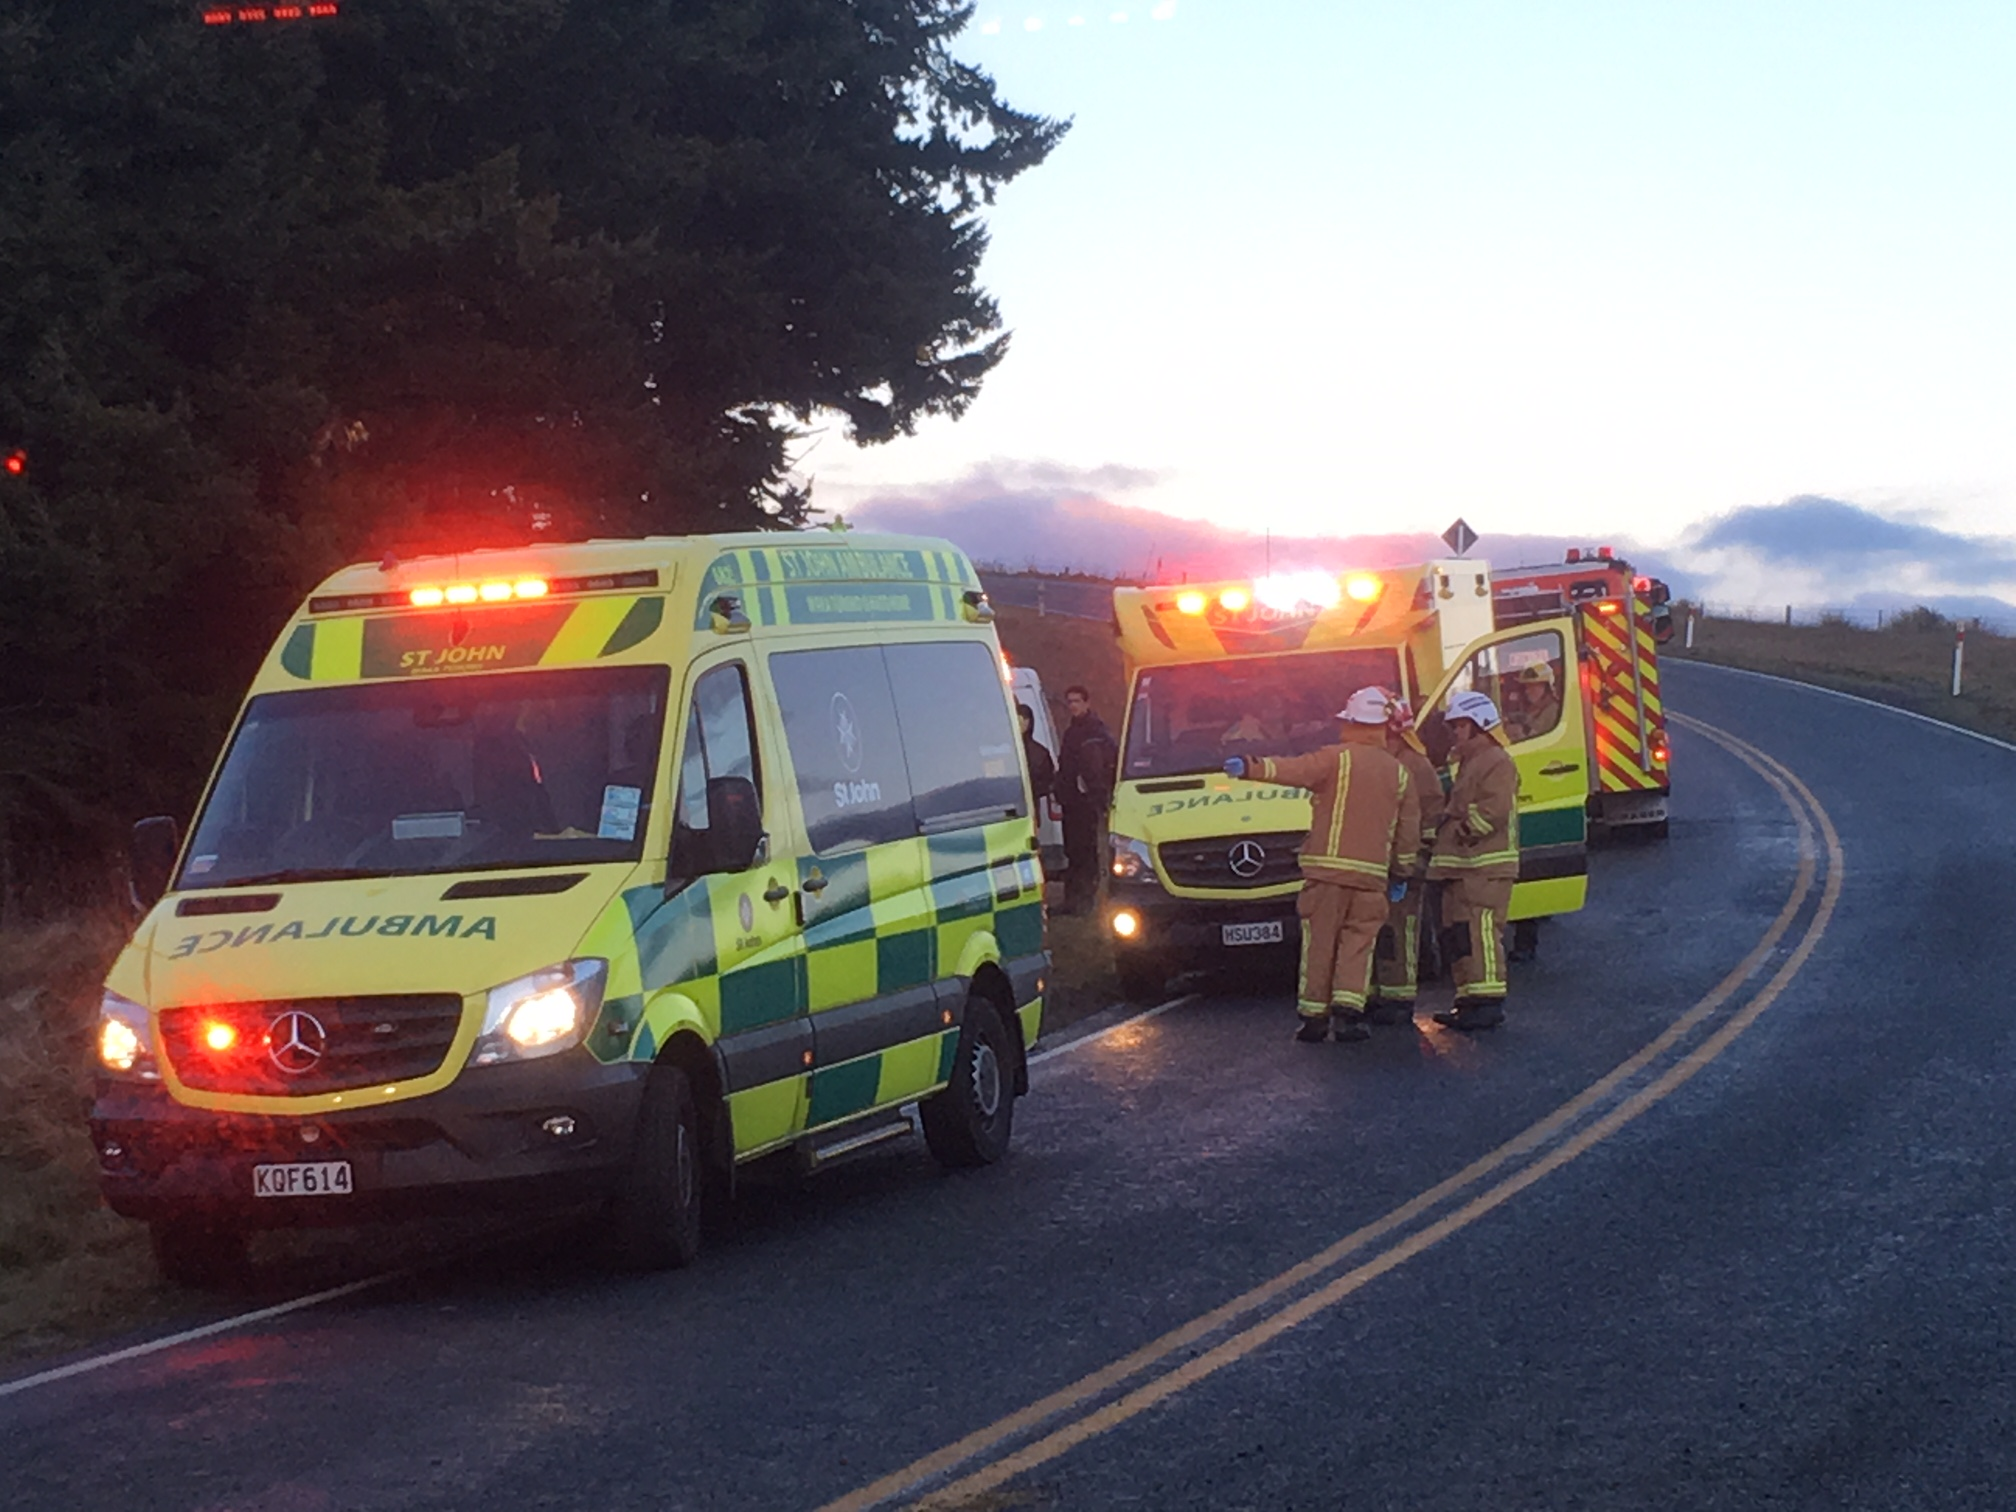 Three ambulances attended a crash at Lee Stream this morning. Photo: Stephen Jaquiery